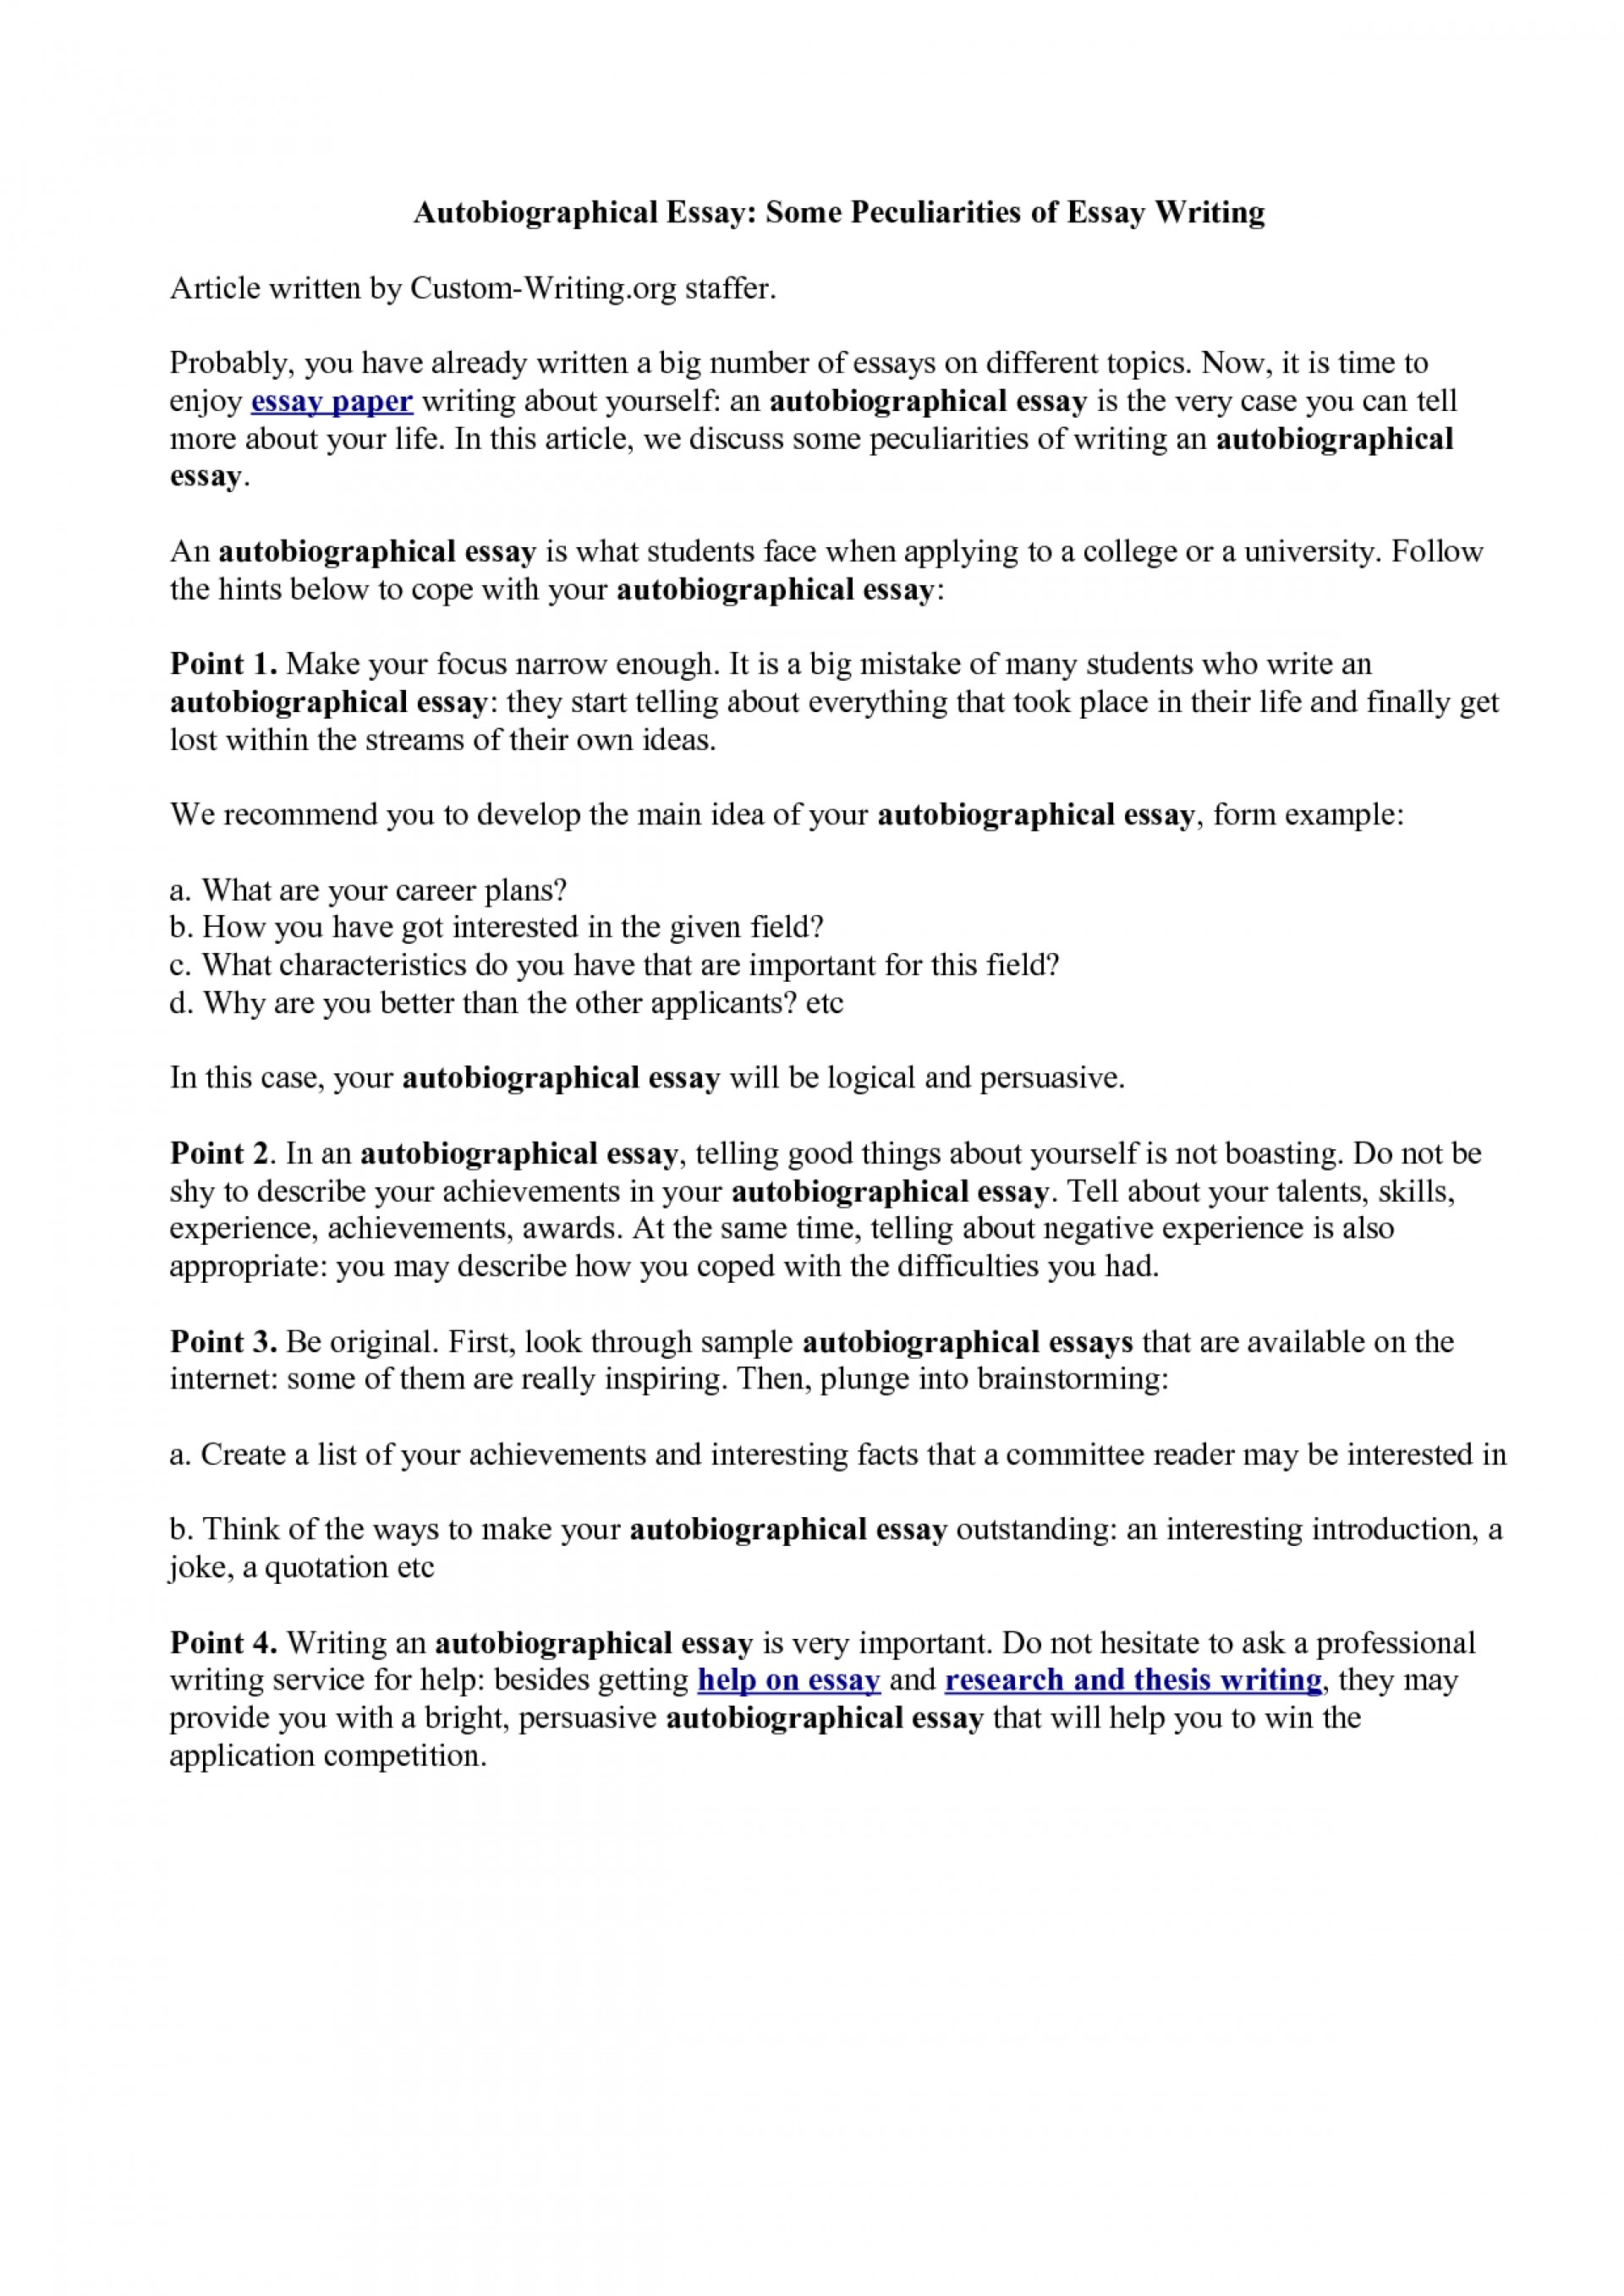 027 Essay Example Autobiography Of Telling About Yourself Luxury Unique Pdf Examples For College 1920